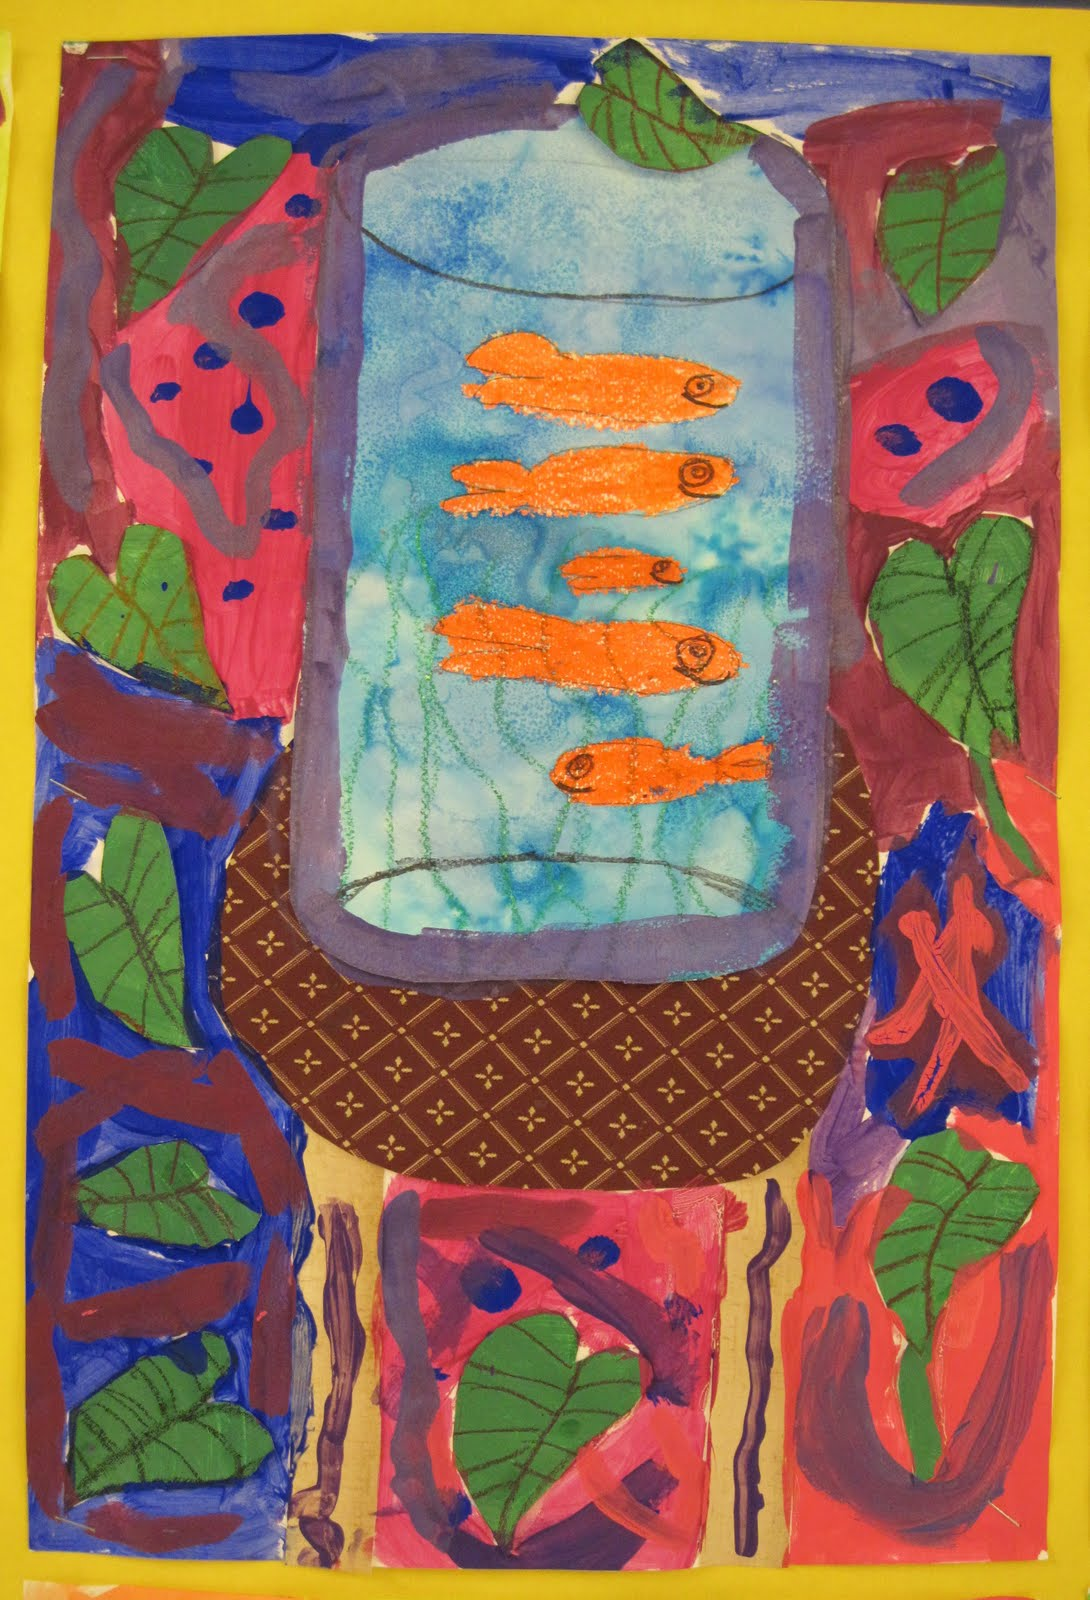 my 4th graders are still completing their of the art room matisselike still life but the 2nd grade is done with their fishbowl artwork